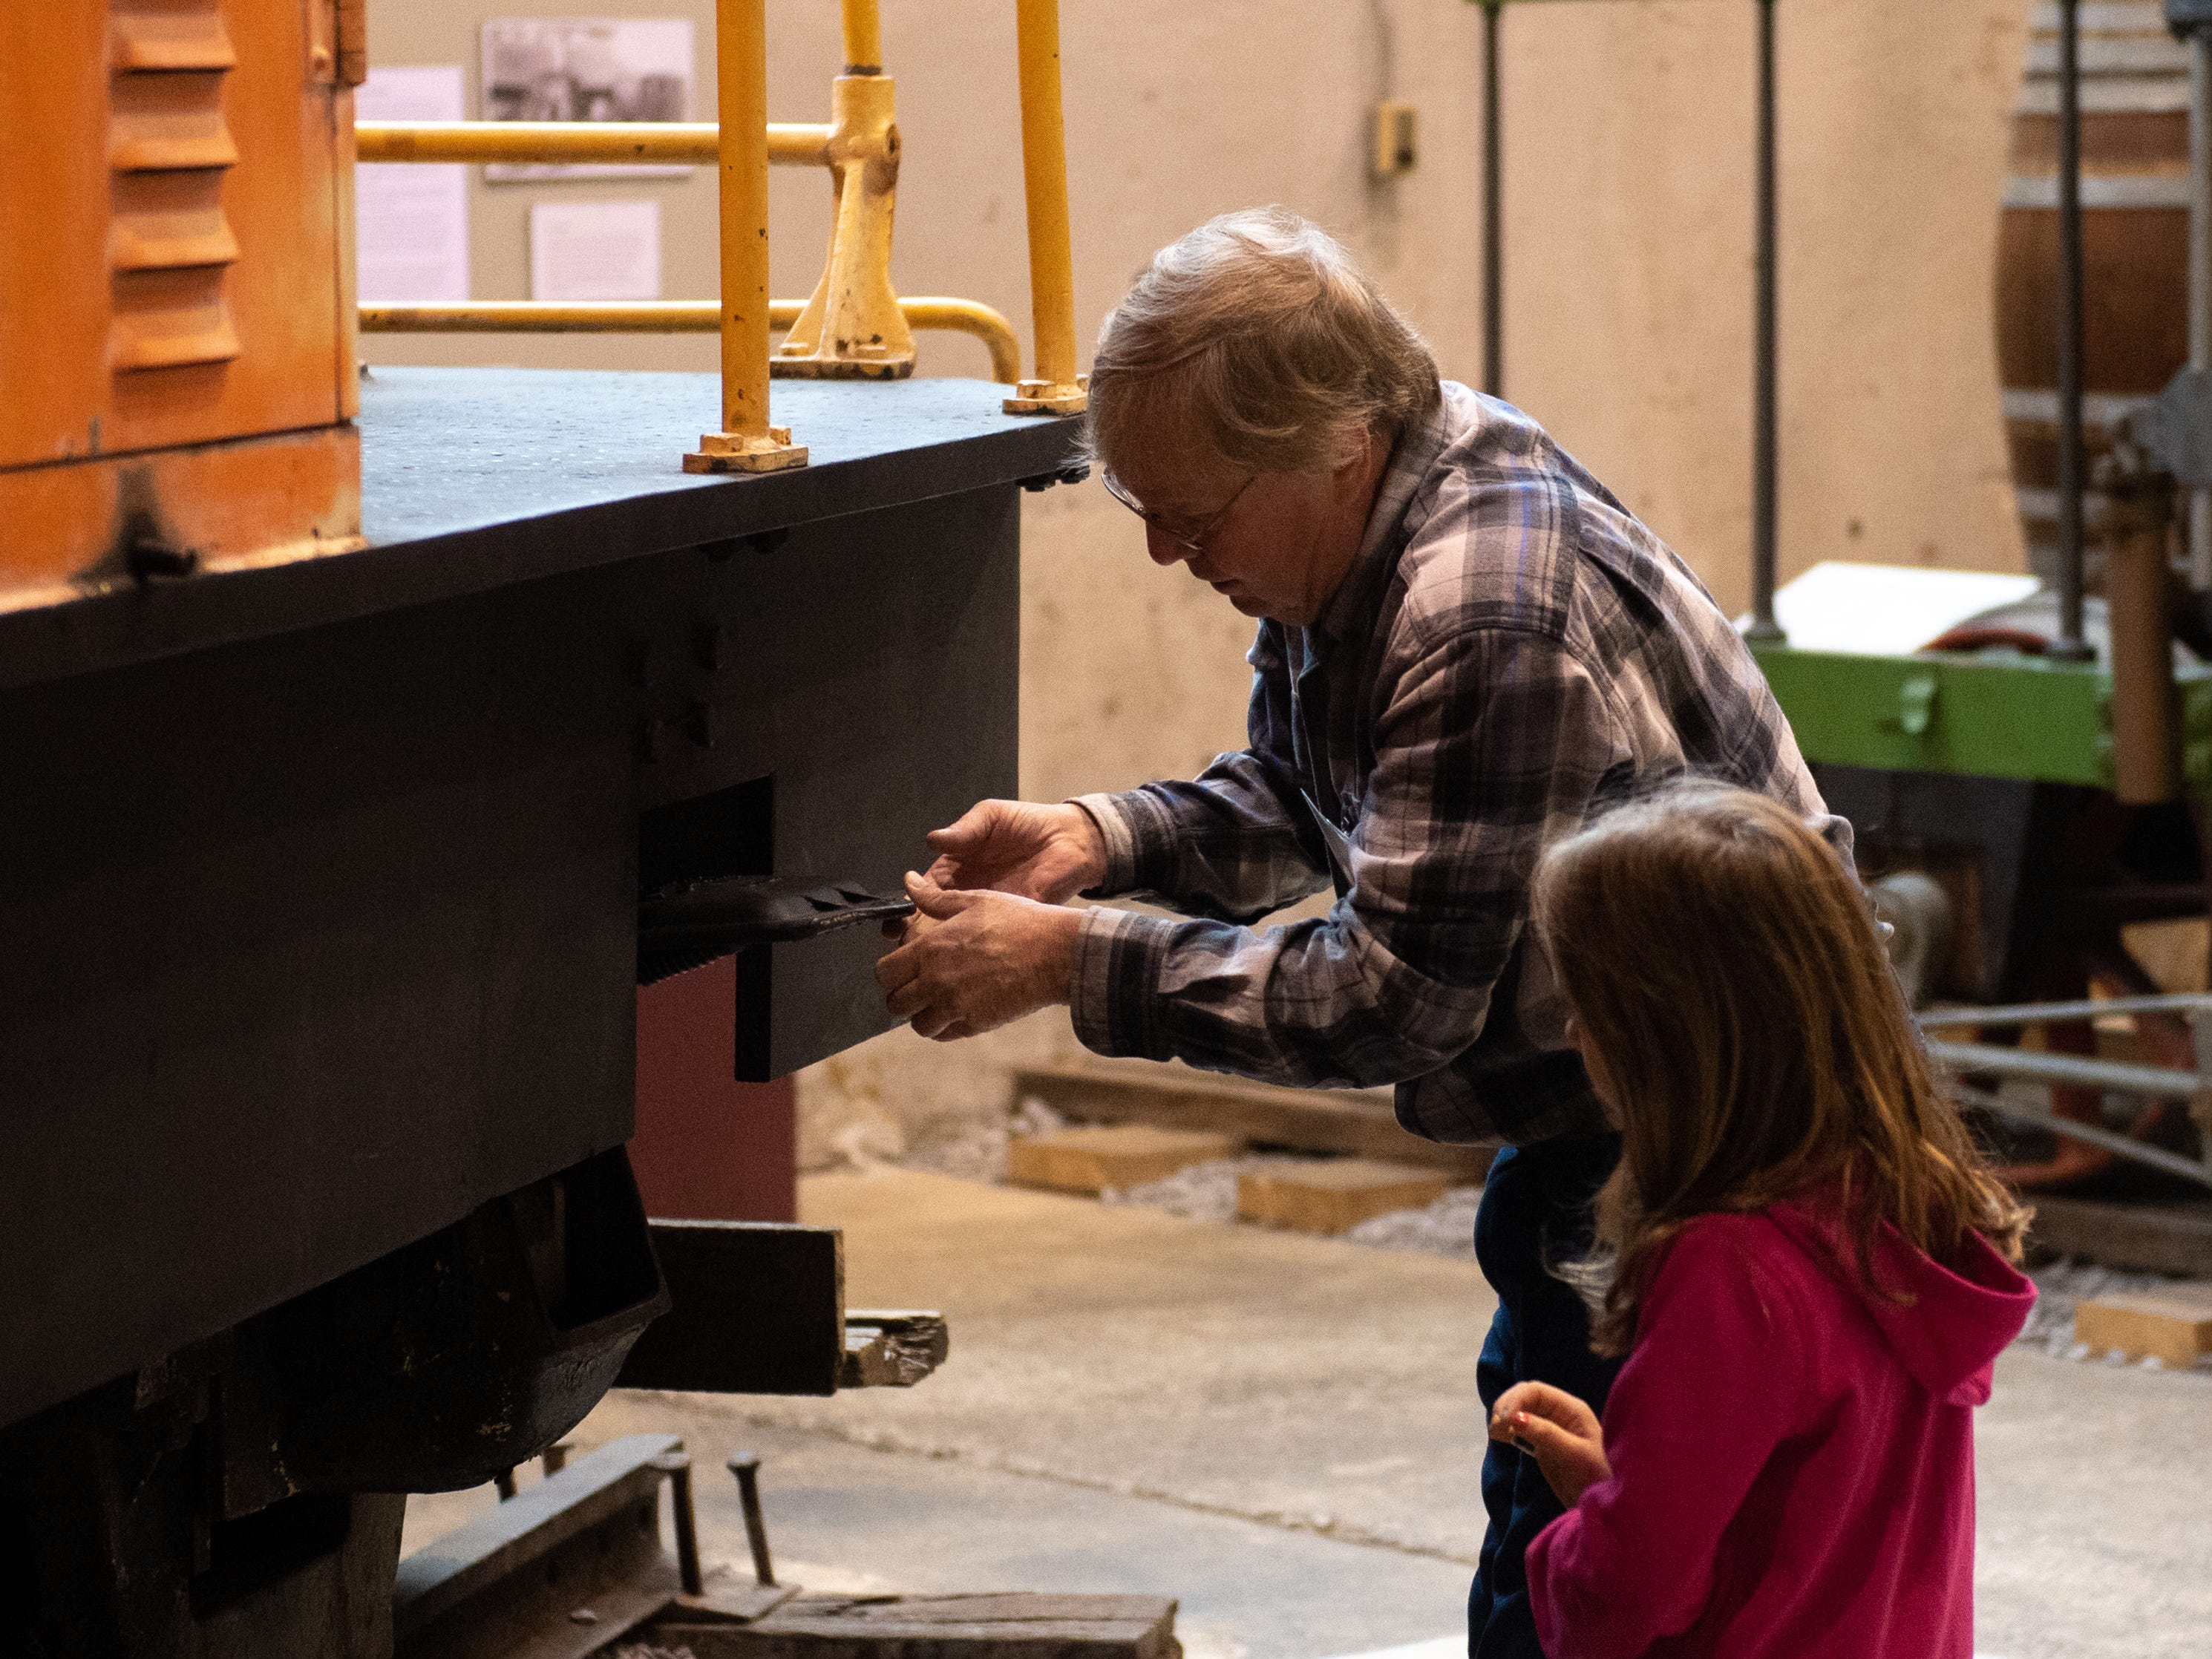 Volunteer Tom Gibson shows Ada Erdenbrack parts of an old train during family activity day at the Agricultural and Industrial Museum, Friday, December 28, 2018.